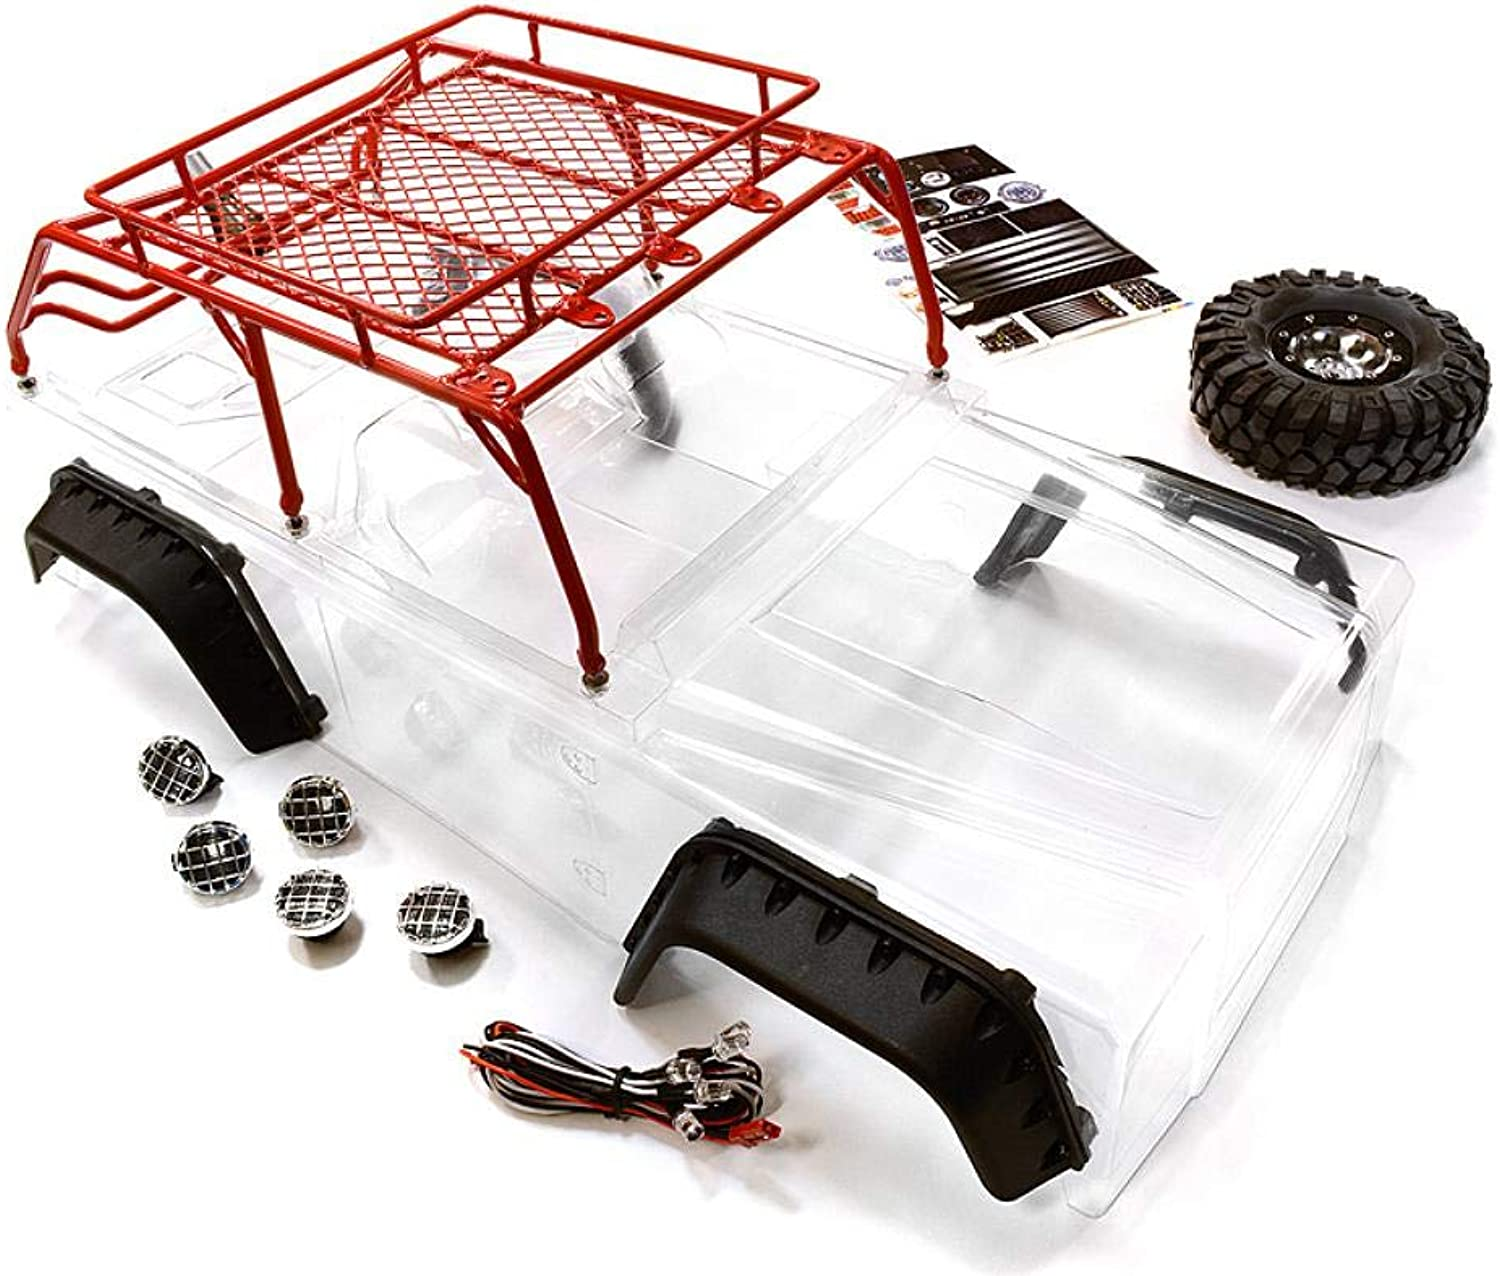 Integy RC modello Hop-ups C26623rosso Realistic JPX Scale corpo w Steel Roll Cage & LED Light for 1 10 Scale Crawler